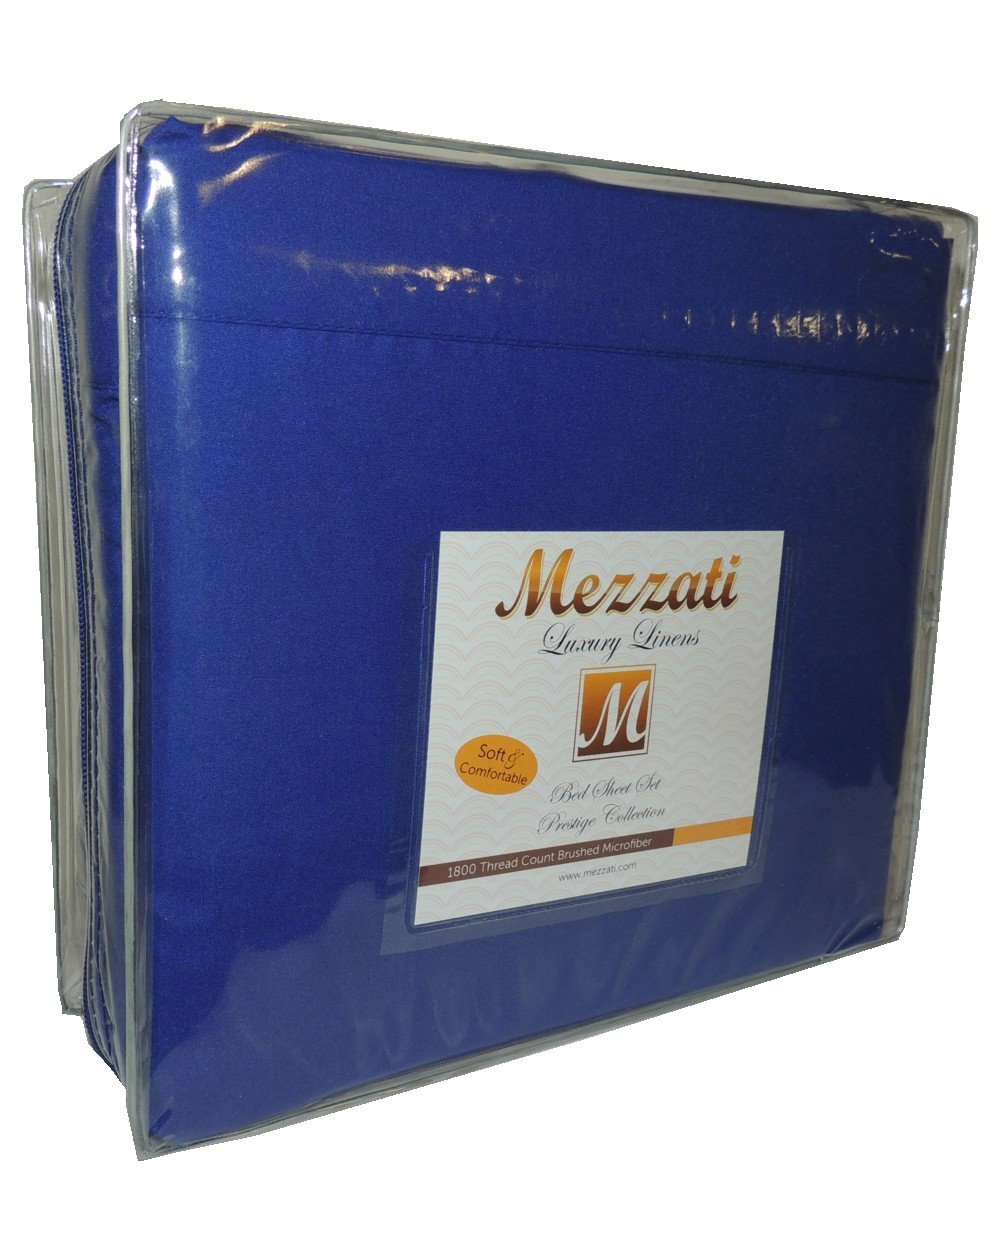 Mezzati Luxury Bed Sheets Set - Sale - Best, Softest, Coziest Sheets Ever